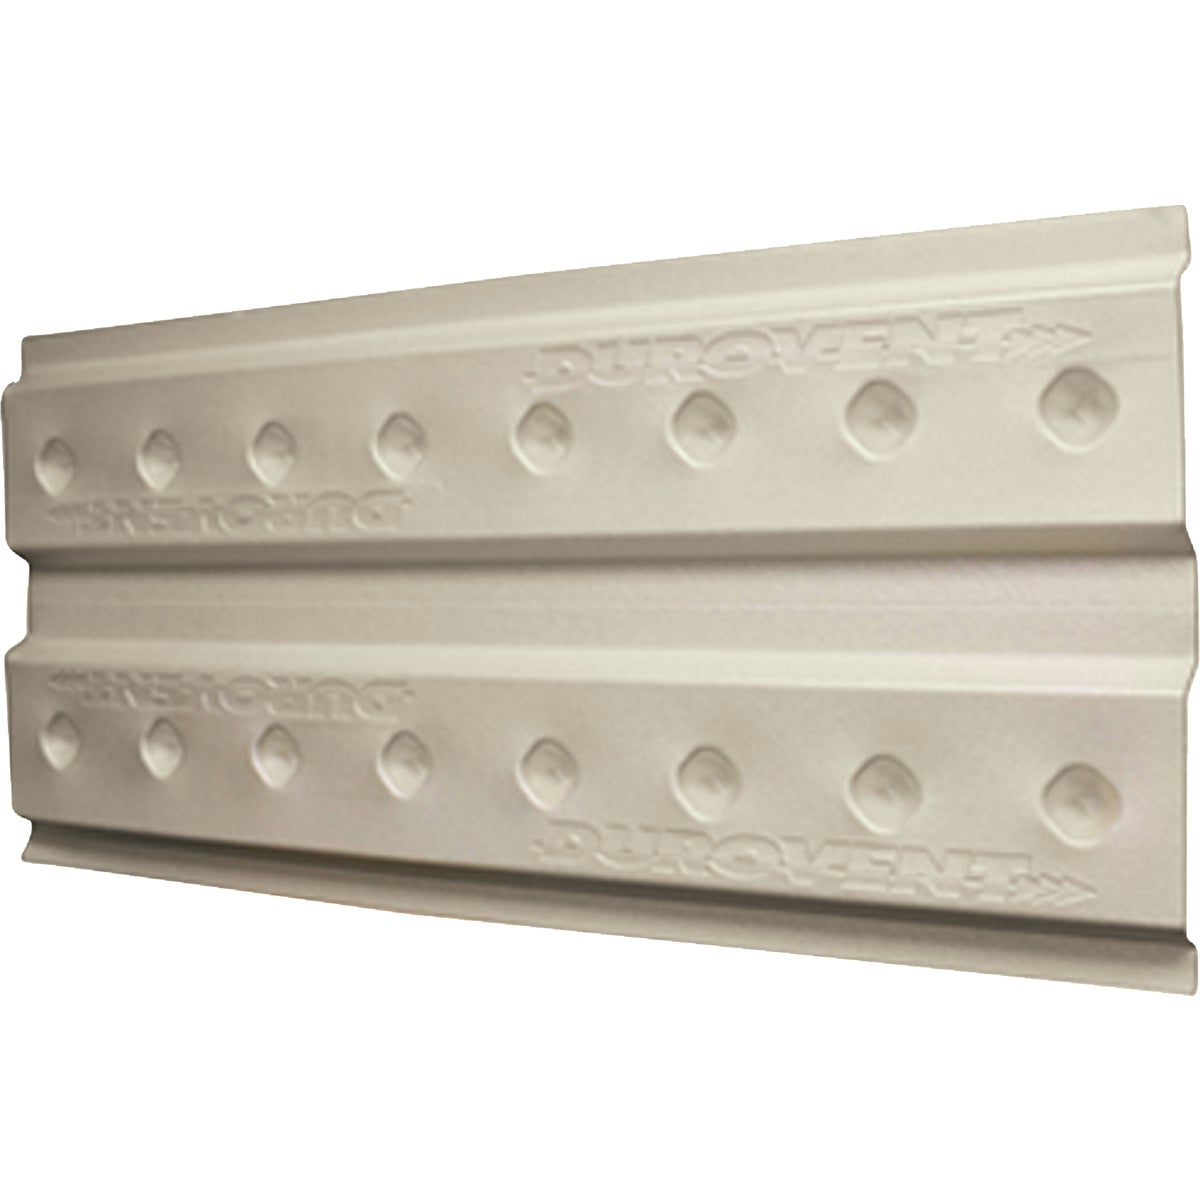 DUROVENT ATTIC RFTR VENT - UDV2248 by Ado Products